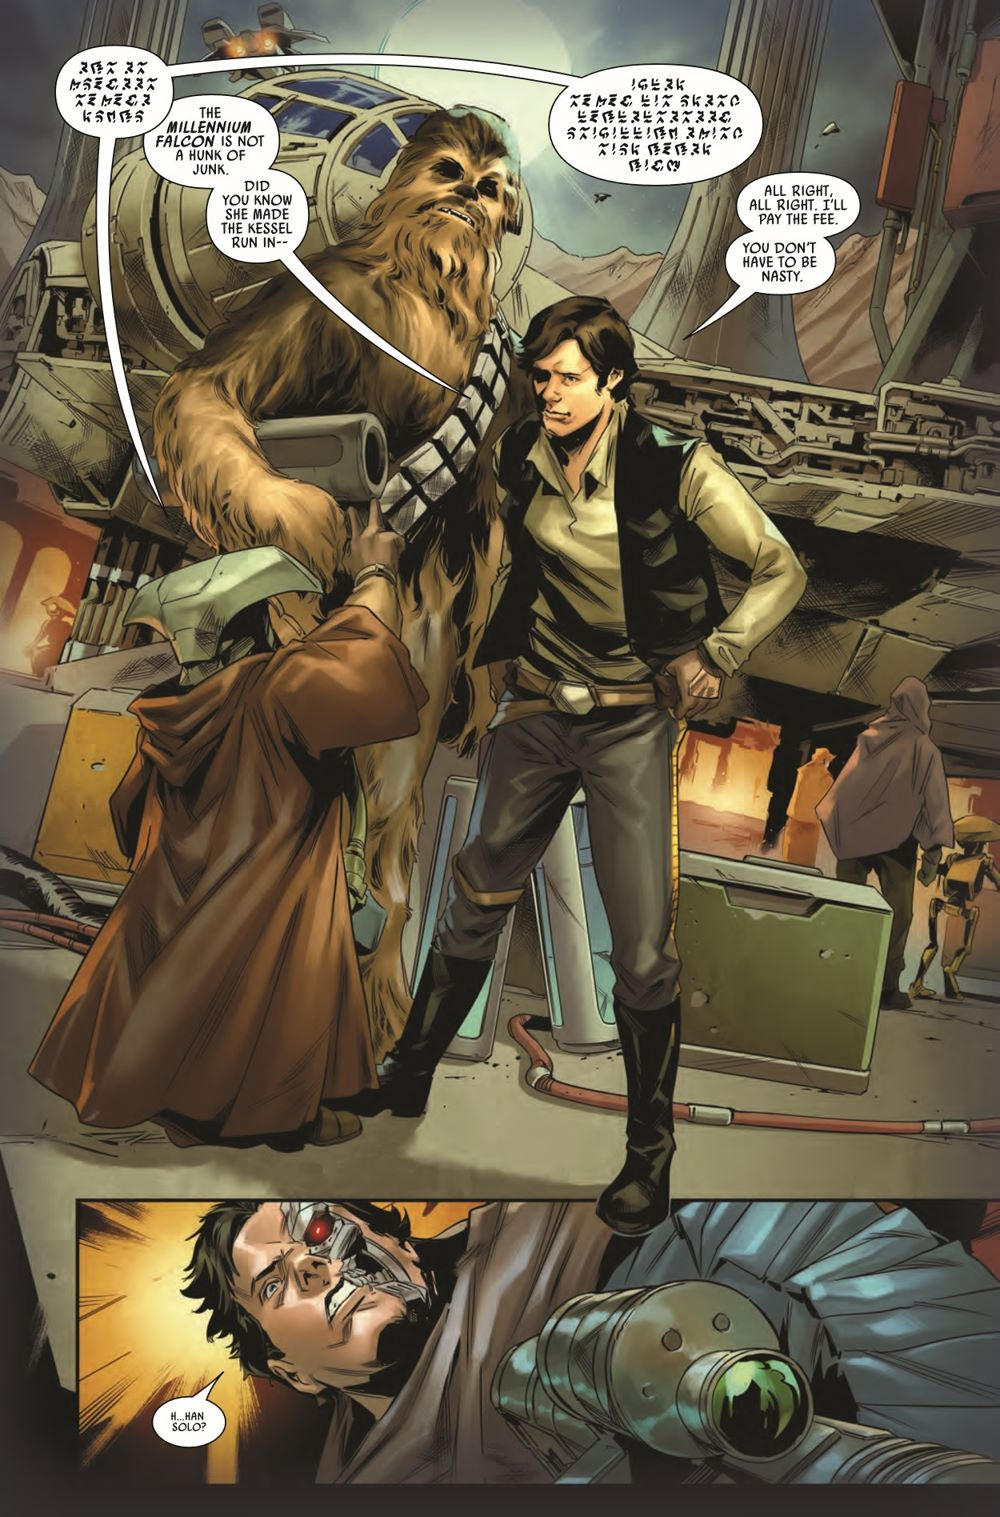 STWBOUNTYHUNT2020012_Preview-6 ComicList Previews: STAR WARS BOUNTY HUNTERS #12